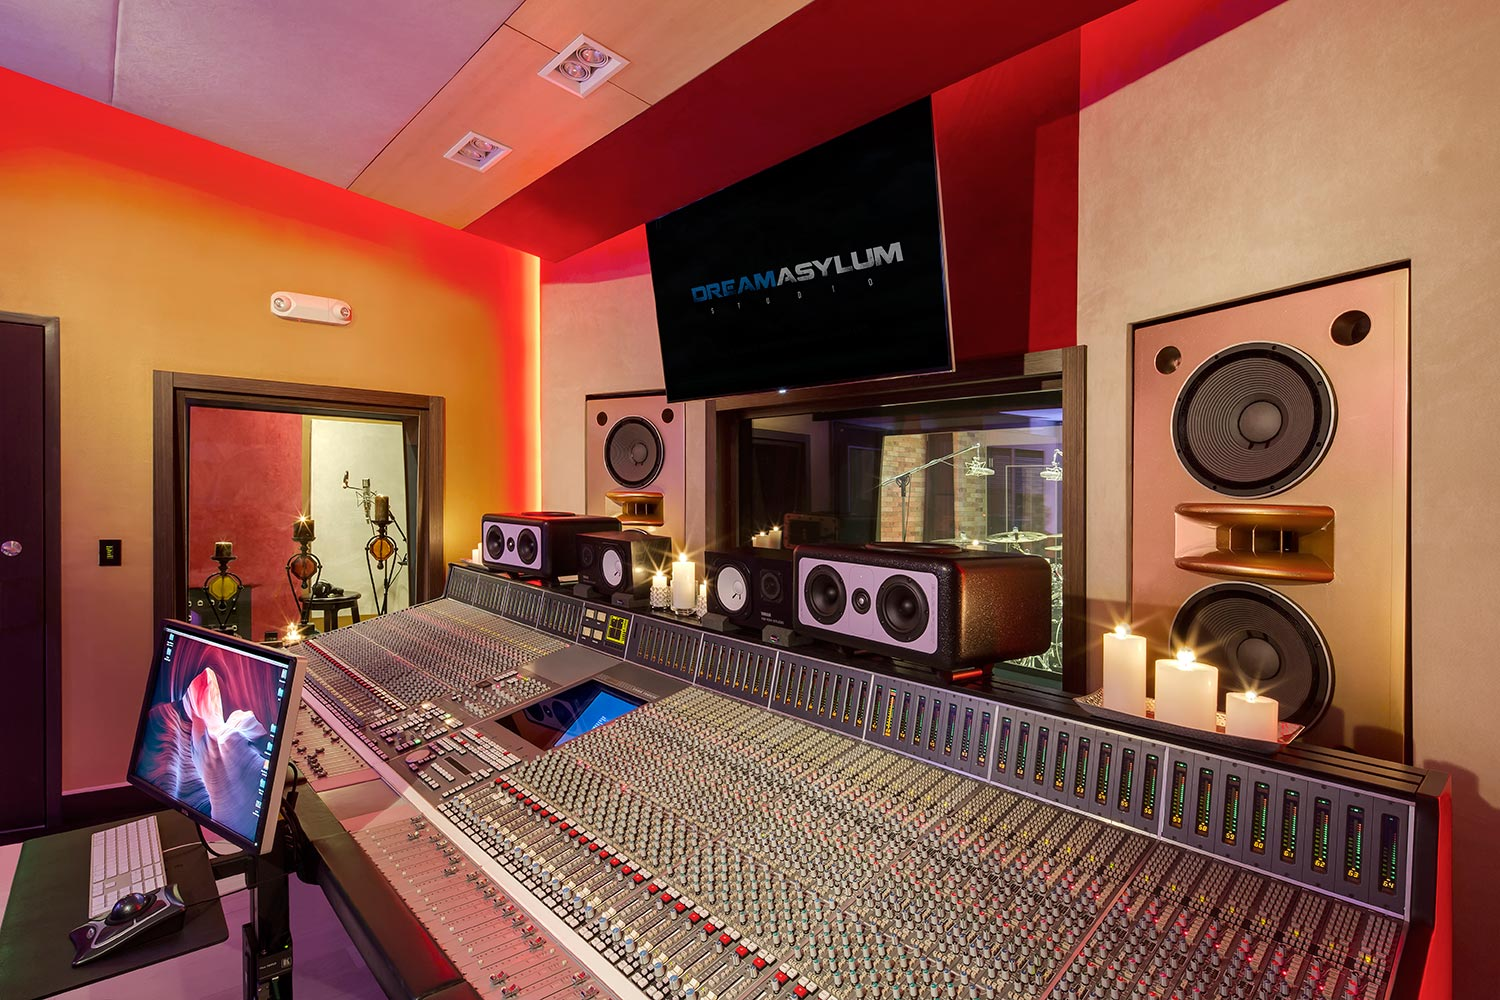 Two of the contemporary music scene's most prolific hit producers and mixing engineer, Nate 'Danja' Hills and Marcella Araica have added a cutting edge, WSDG recording studio to their N.A.R.S. (New Age Rock Stars) label. Studio A, Marcella's studio side photo.